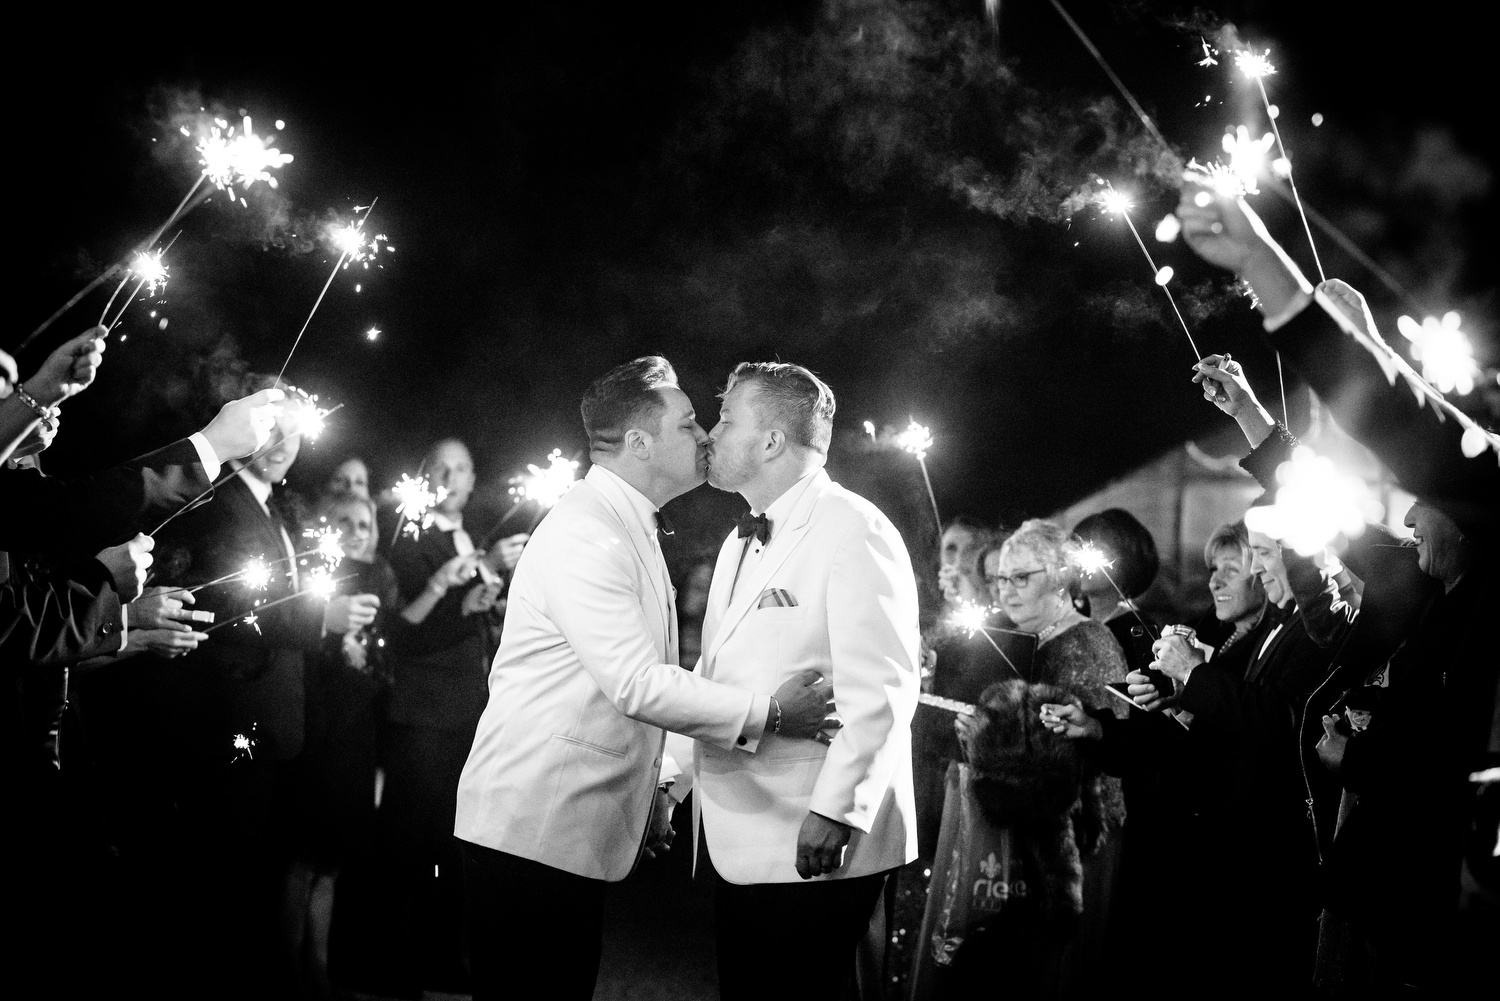 Sparkler exit during a same sex wedding at Heritage Prairie Farm.